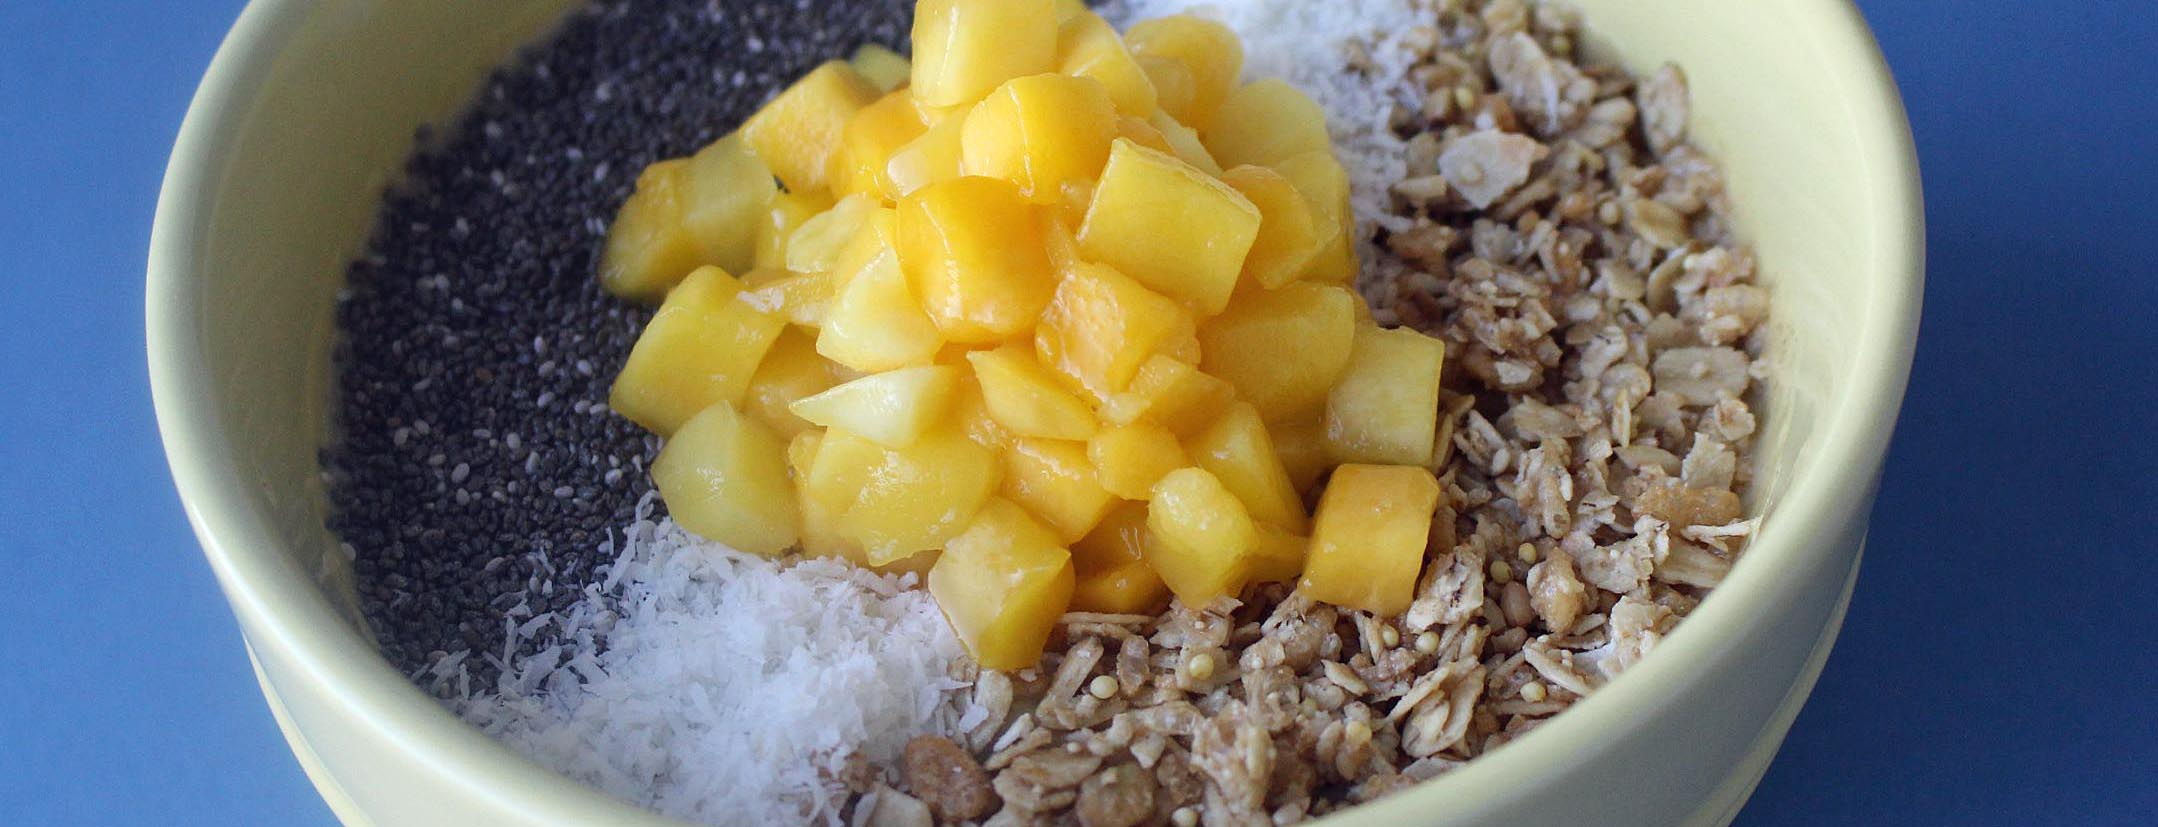 Photo of Mango and Chia Smoothie Bowl